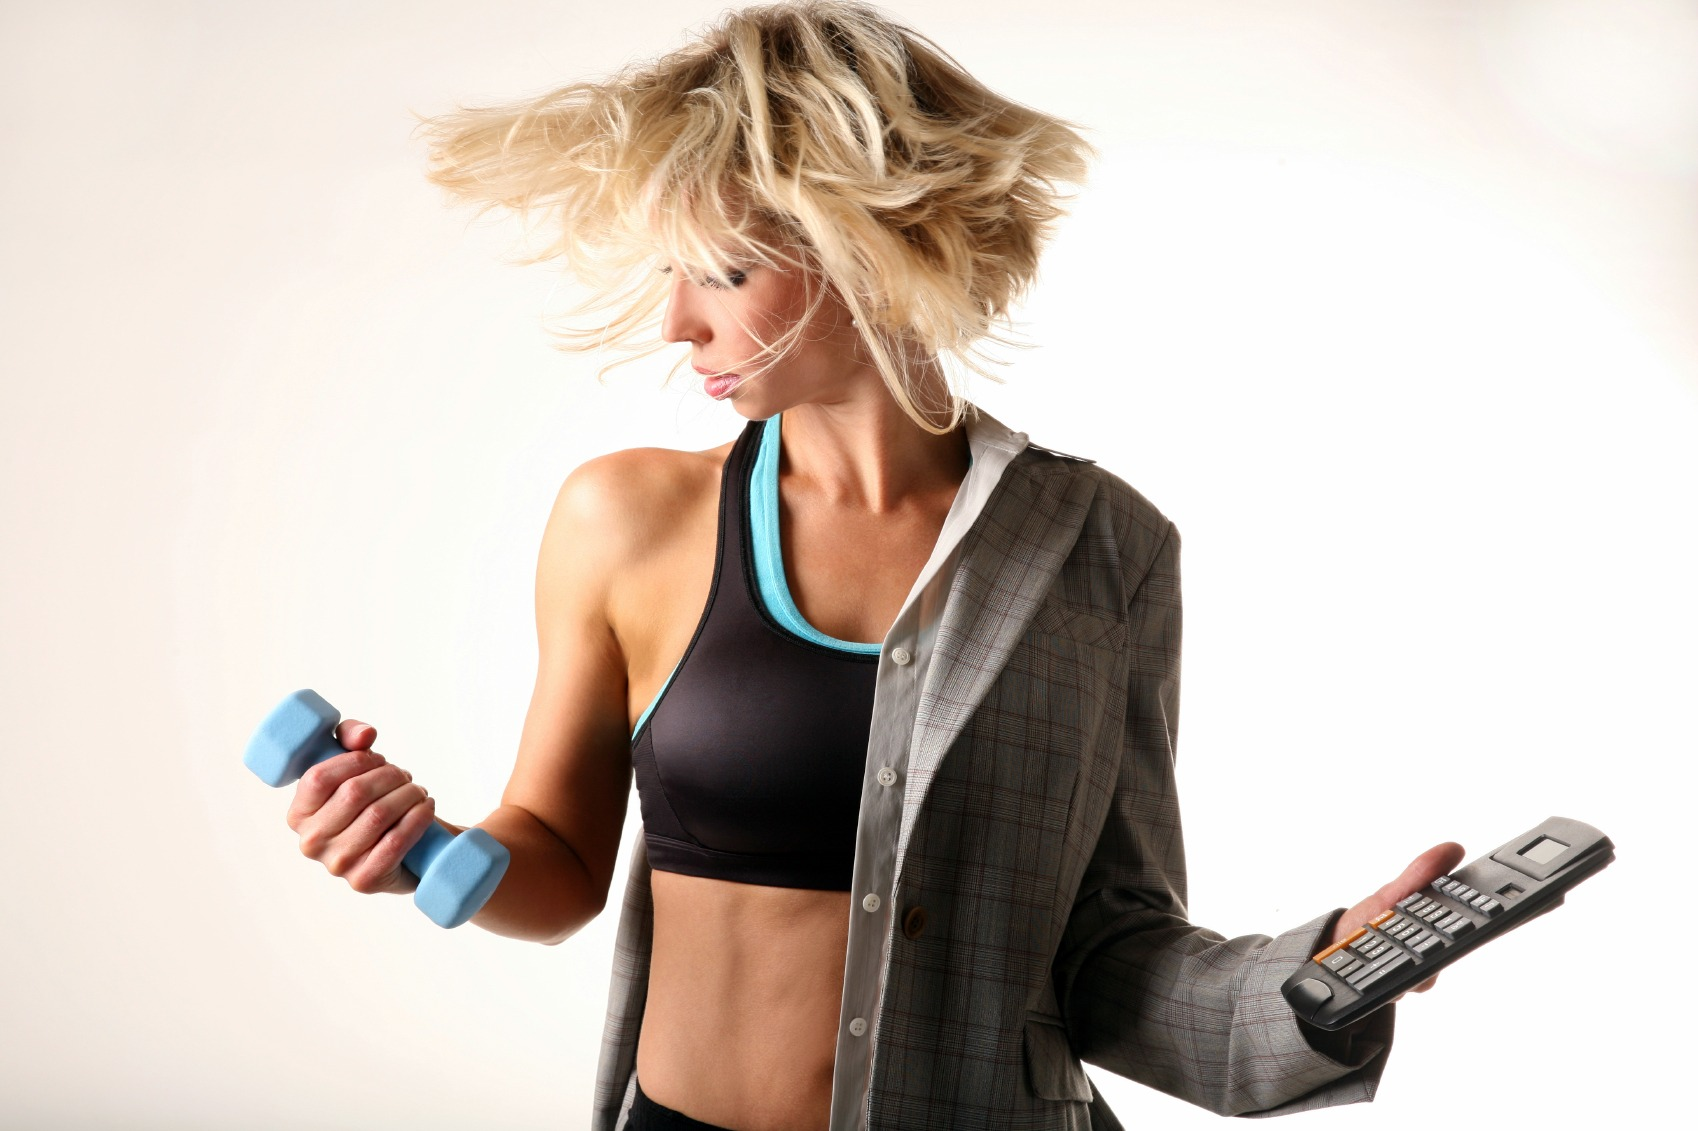 easy-workout-tips-for-a-busy-lifestyle.jpg